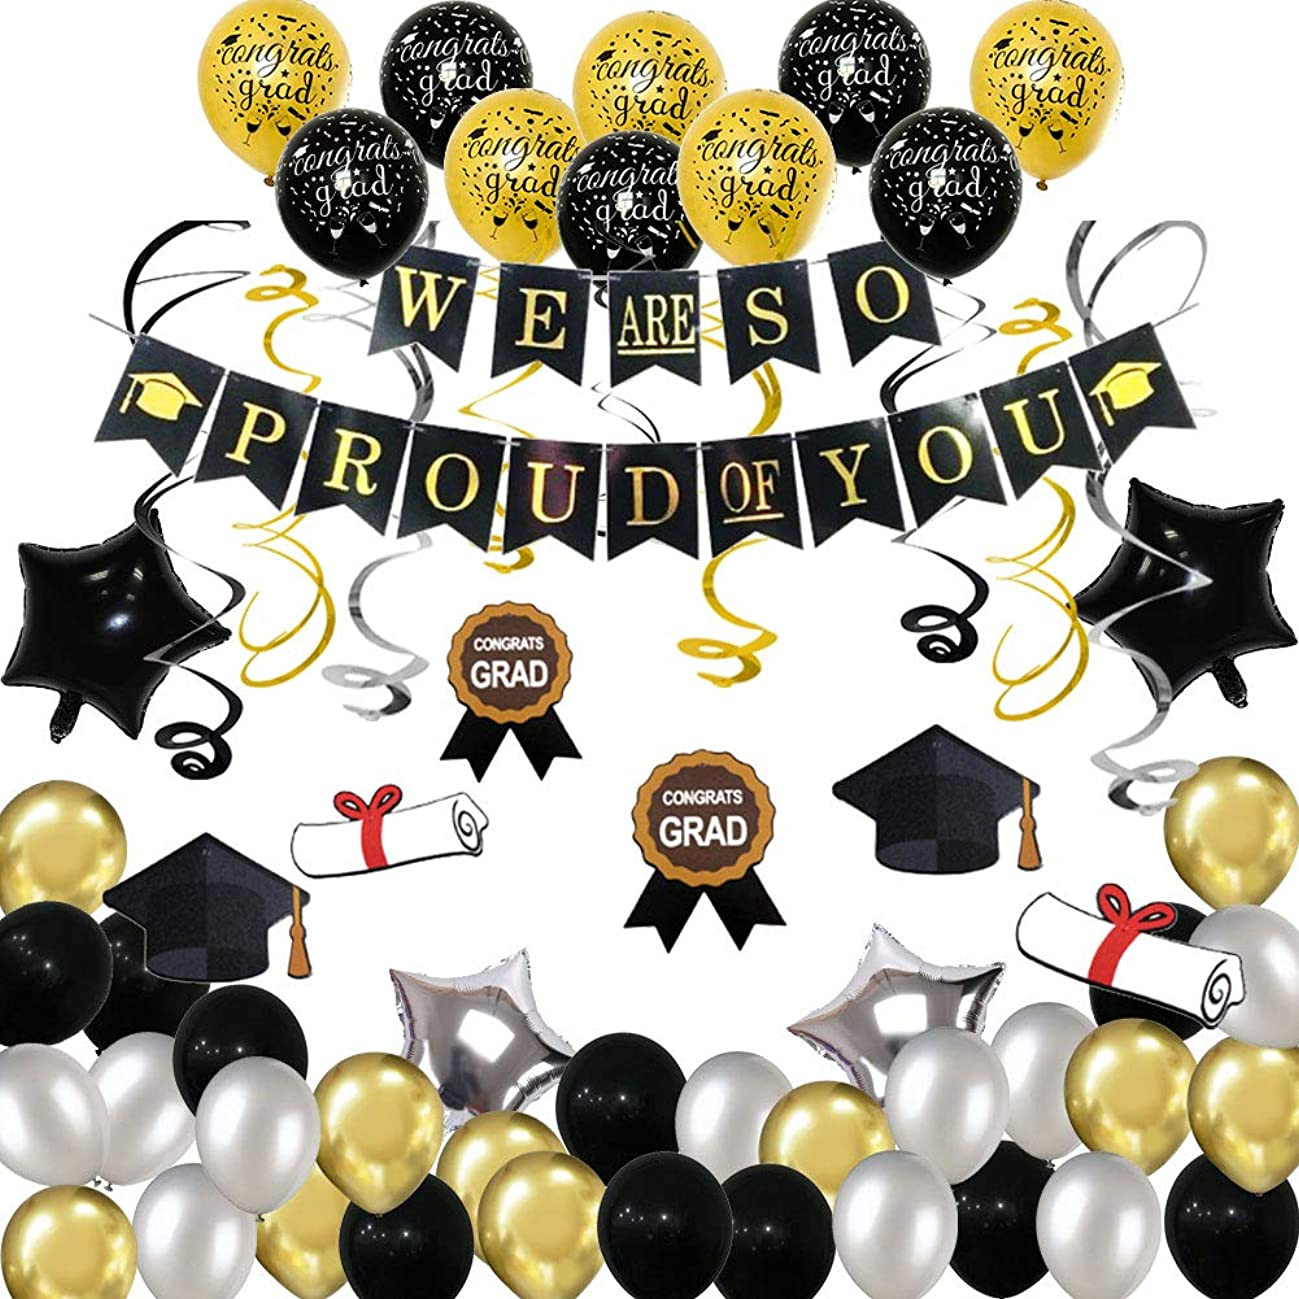 Graduation Party Supplies 2019,Graduation Decorations 2019,include 74Pcs Banners Hanging Swirls Pentagram Balloons Gold Silver Black Balloons Color Ribbon Balloon Straw for Girls Boys Photo Props